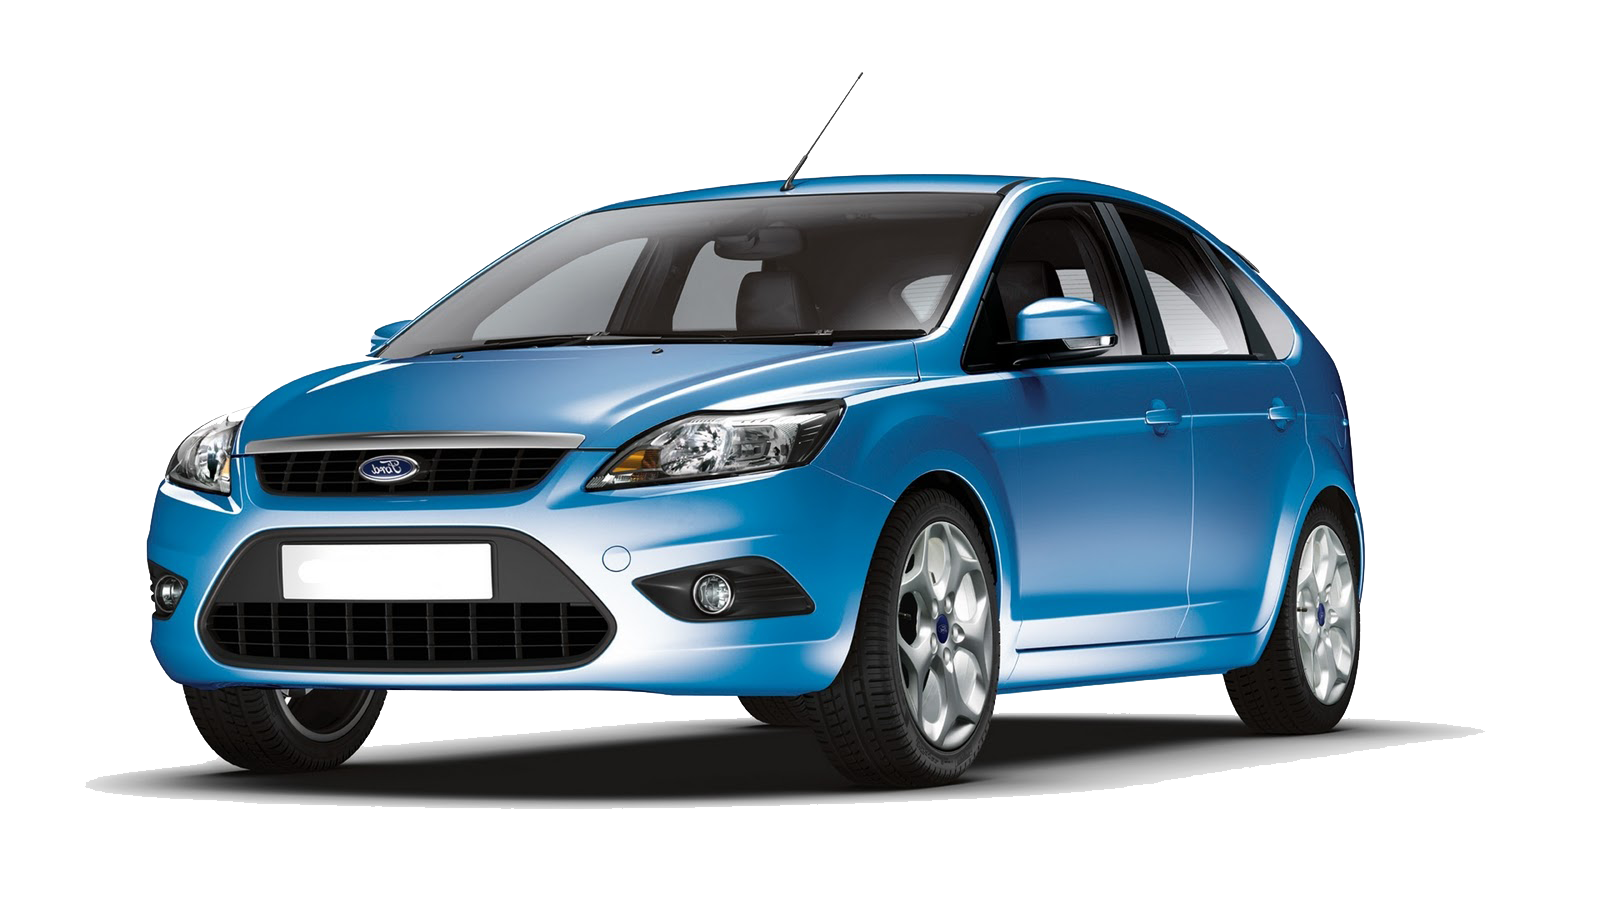 Ford PNG Image - PurePNG | Free transparent CC0 PNG Image Library